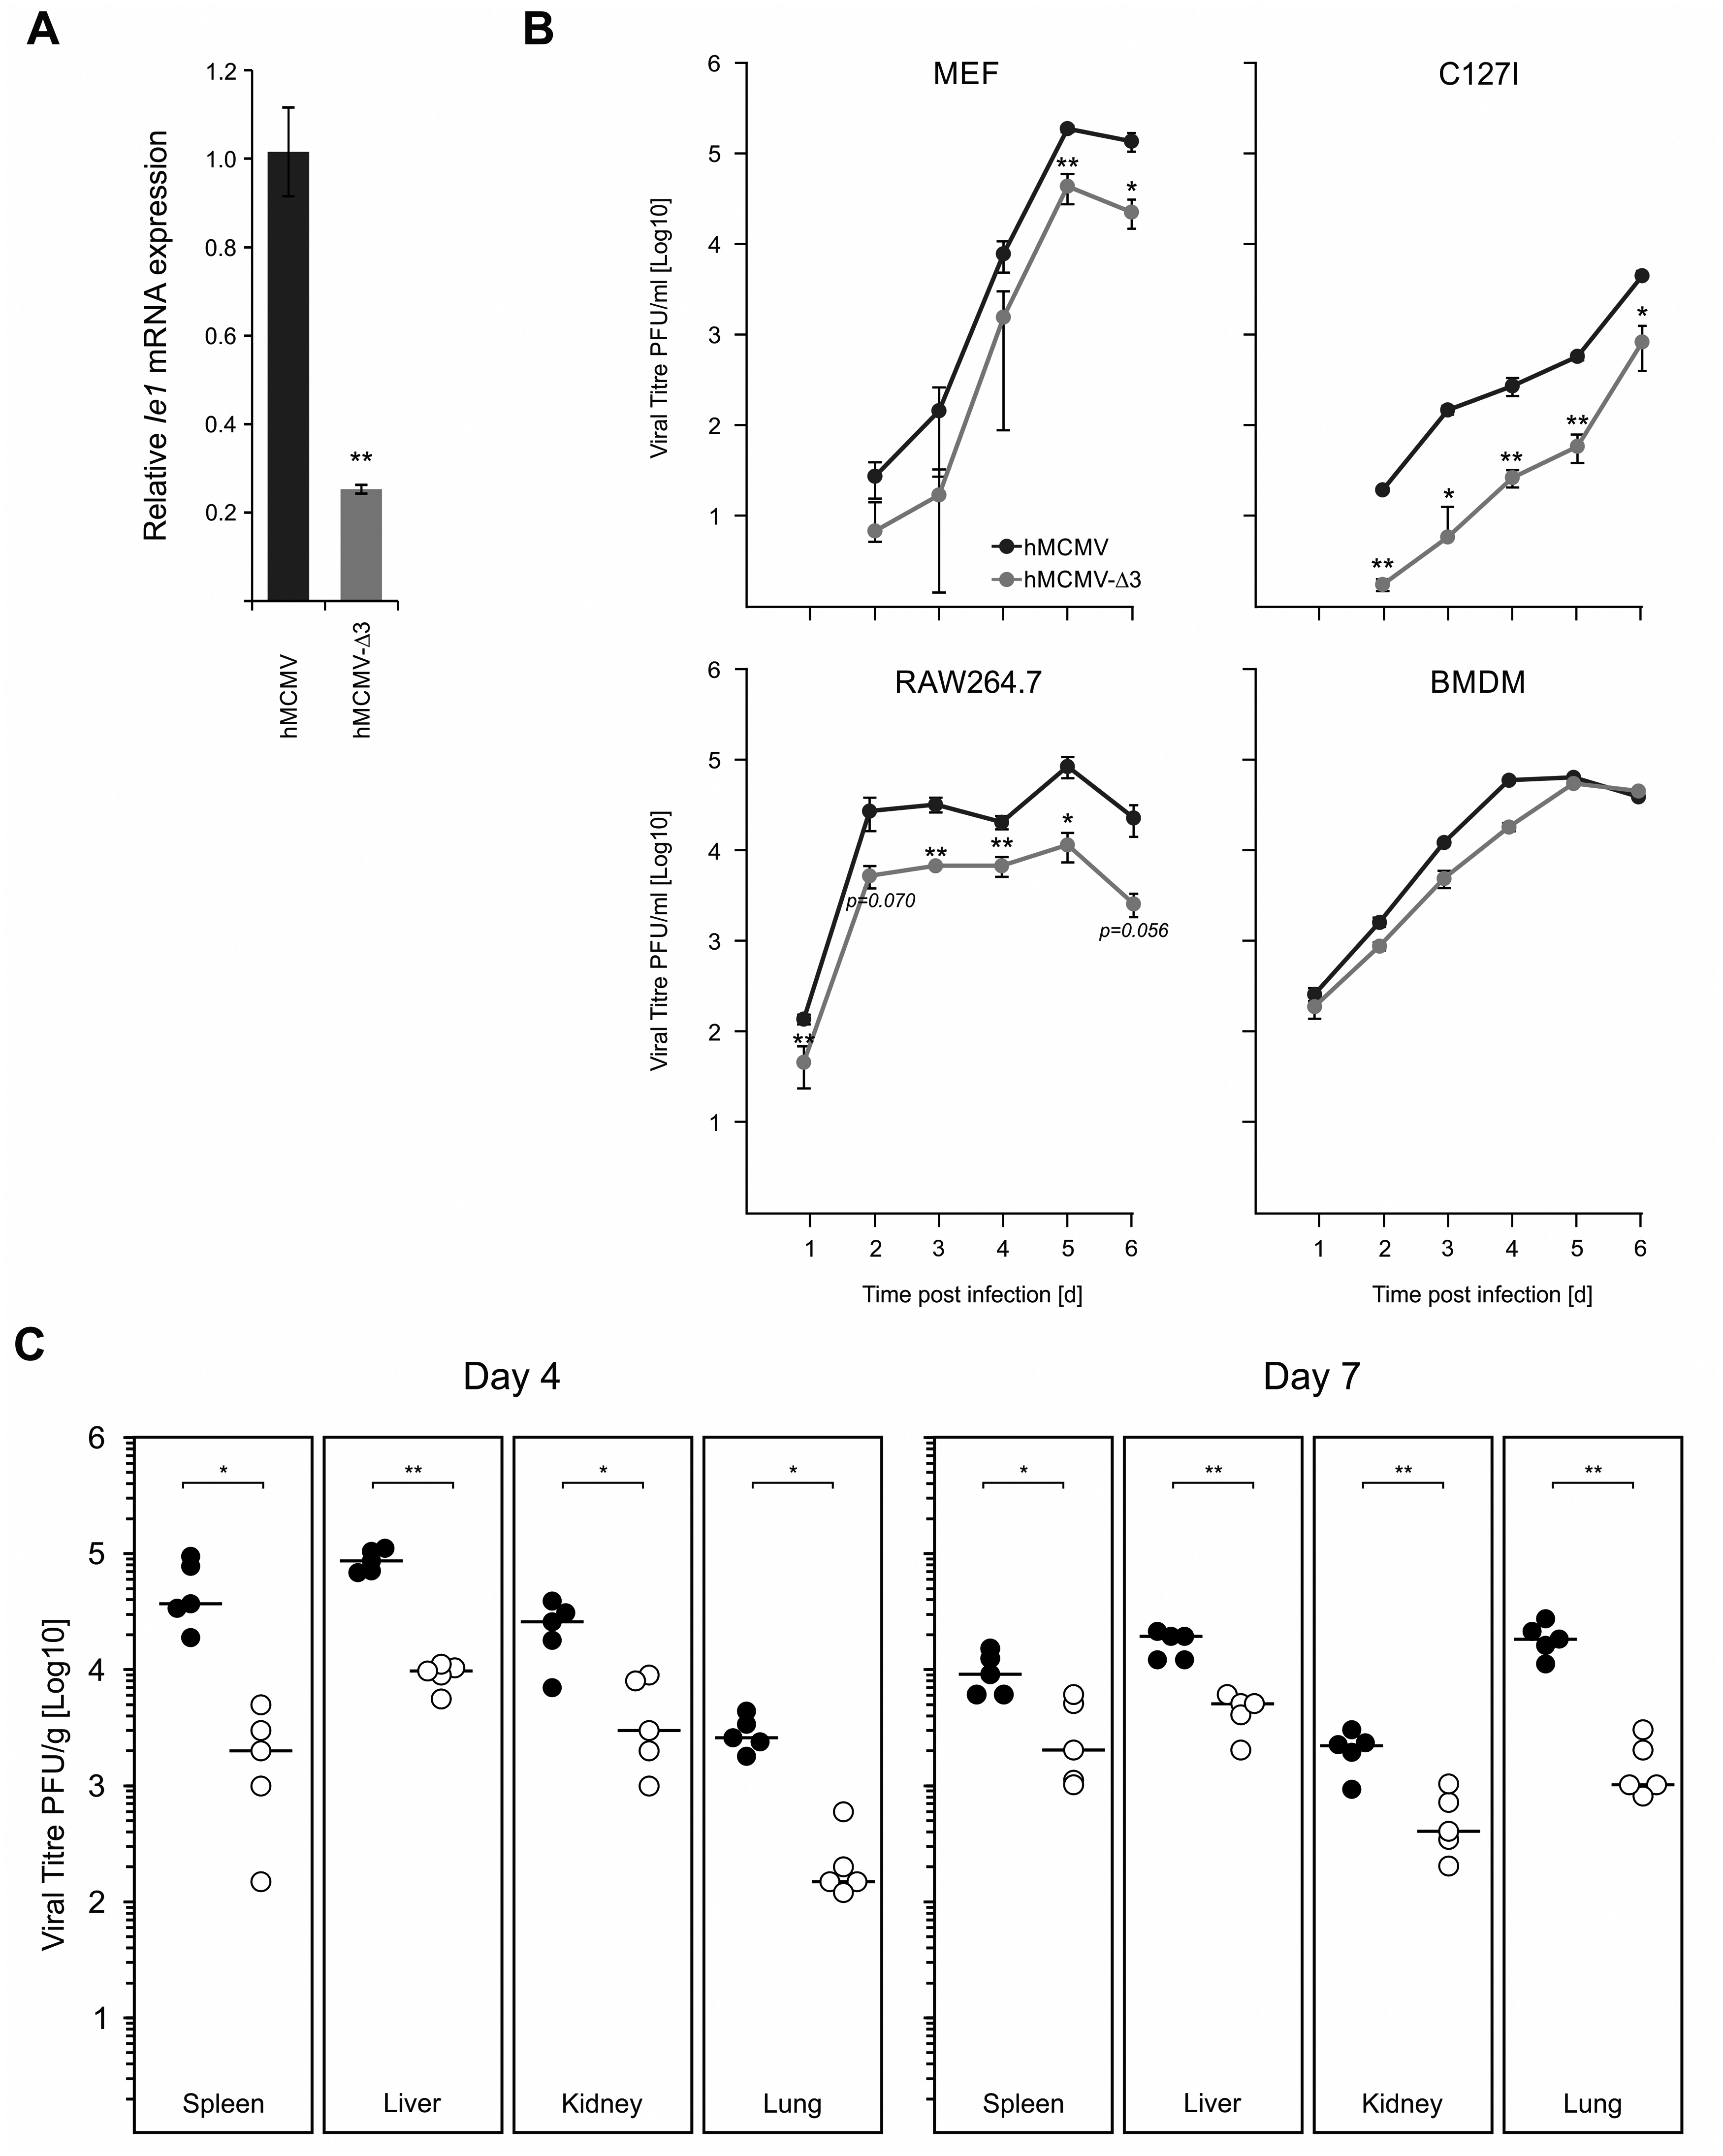 Loss of TLR-activated transcription factor binding motifs has impacts on viral replication and fitness.